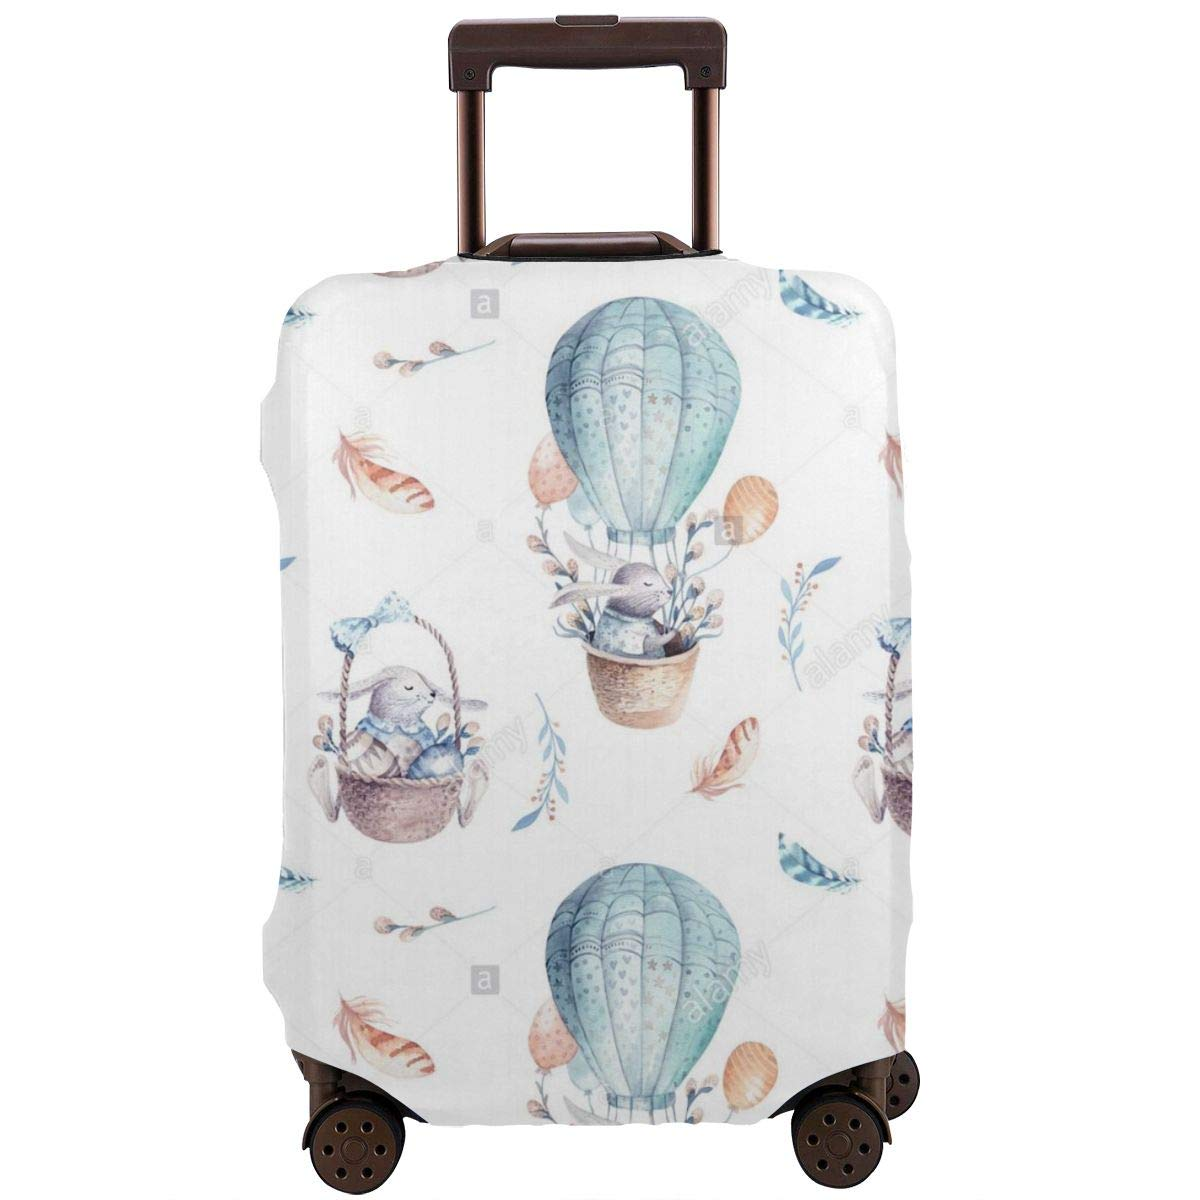 JHNDKJS Cute Baby Rabbit Animal Travel Luggage Cover Baggage Suitcase Protector Fit for 12-18 Inch Luggage